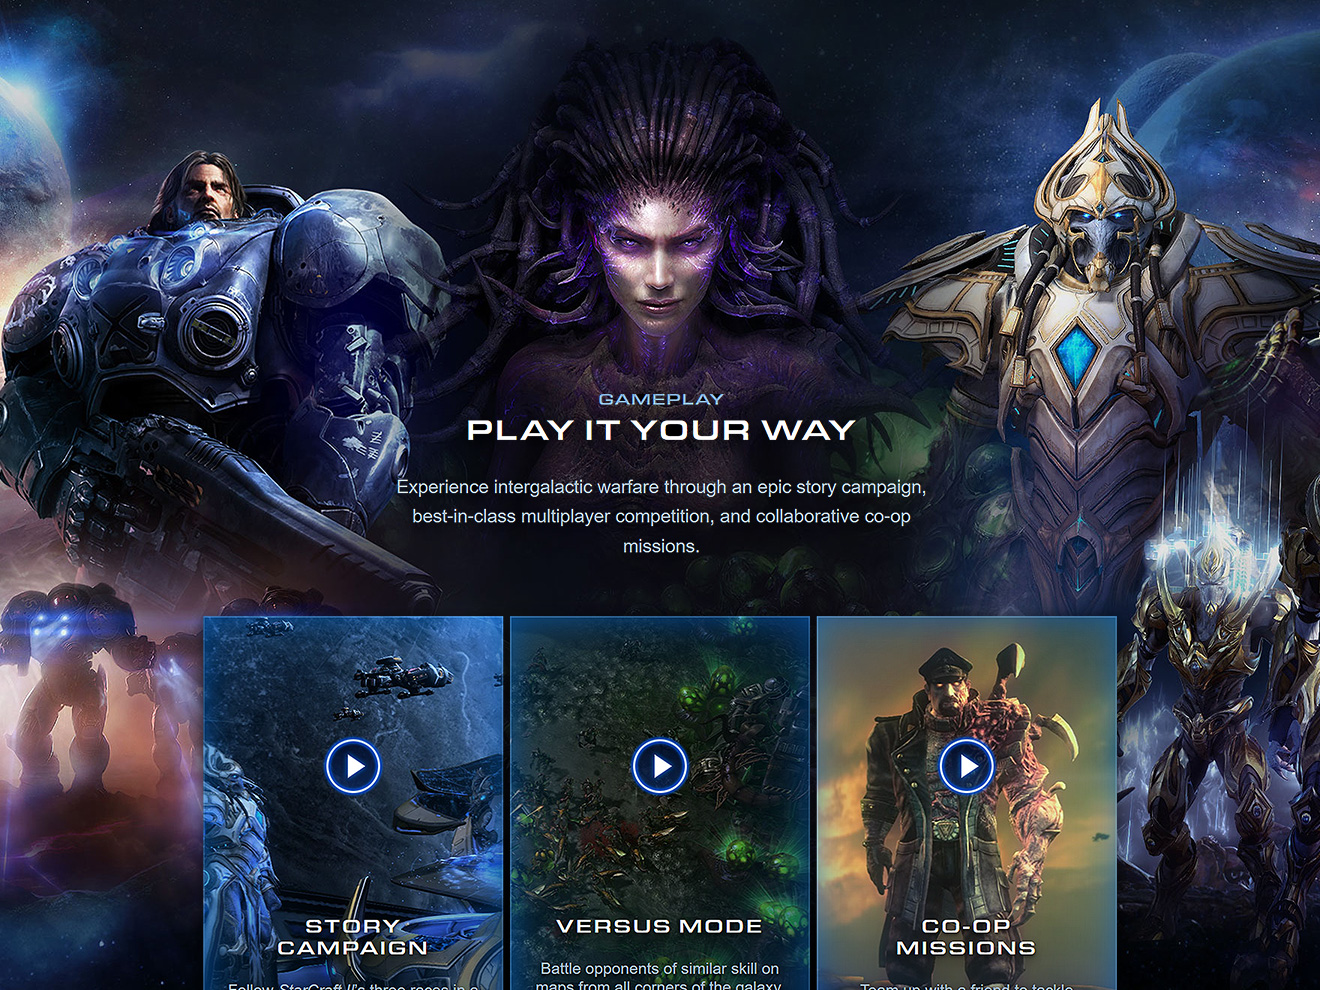 Homepage art, showing Jim Raynor, Sarah Kerrigan, and Artanis